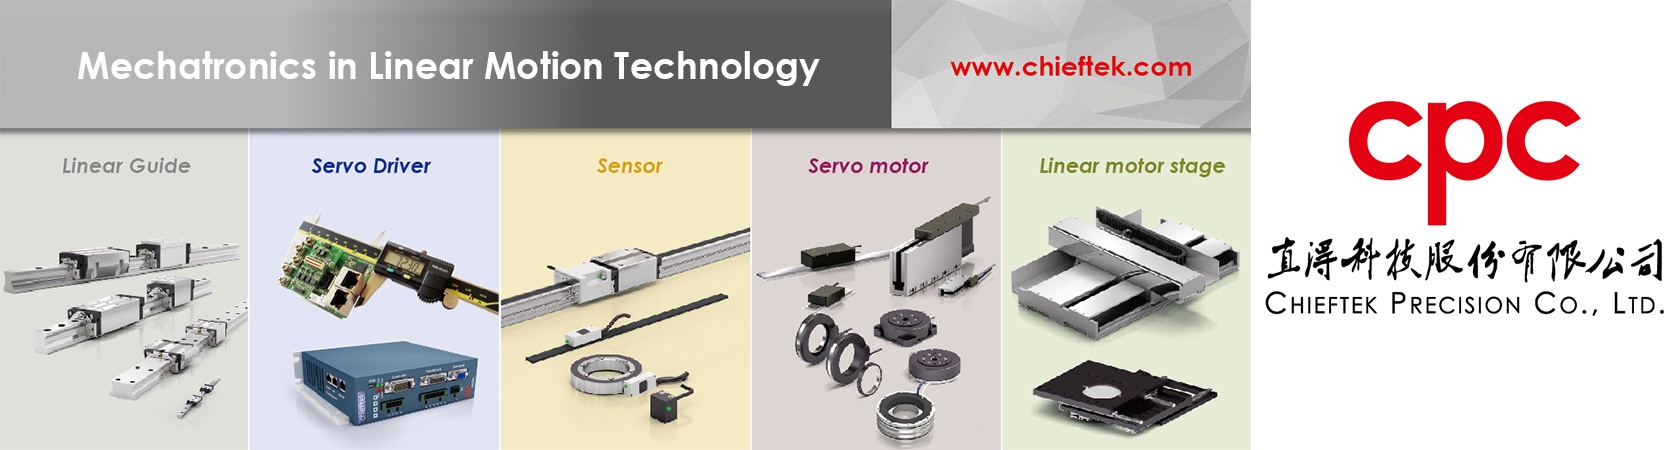 CHIEFTECH PRECISION CO., LTD.